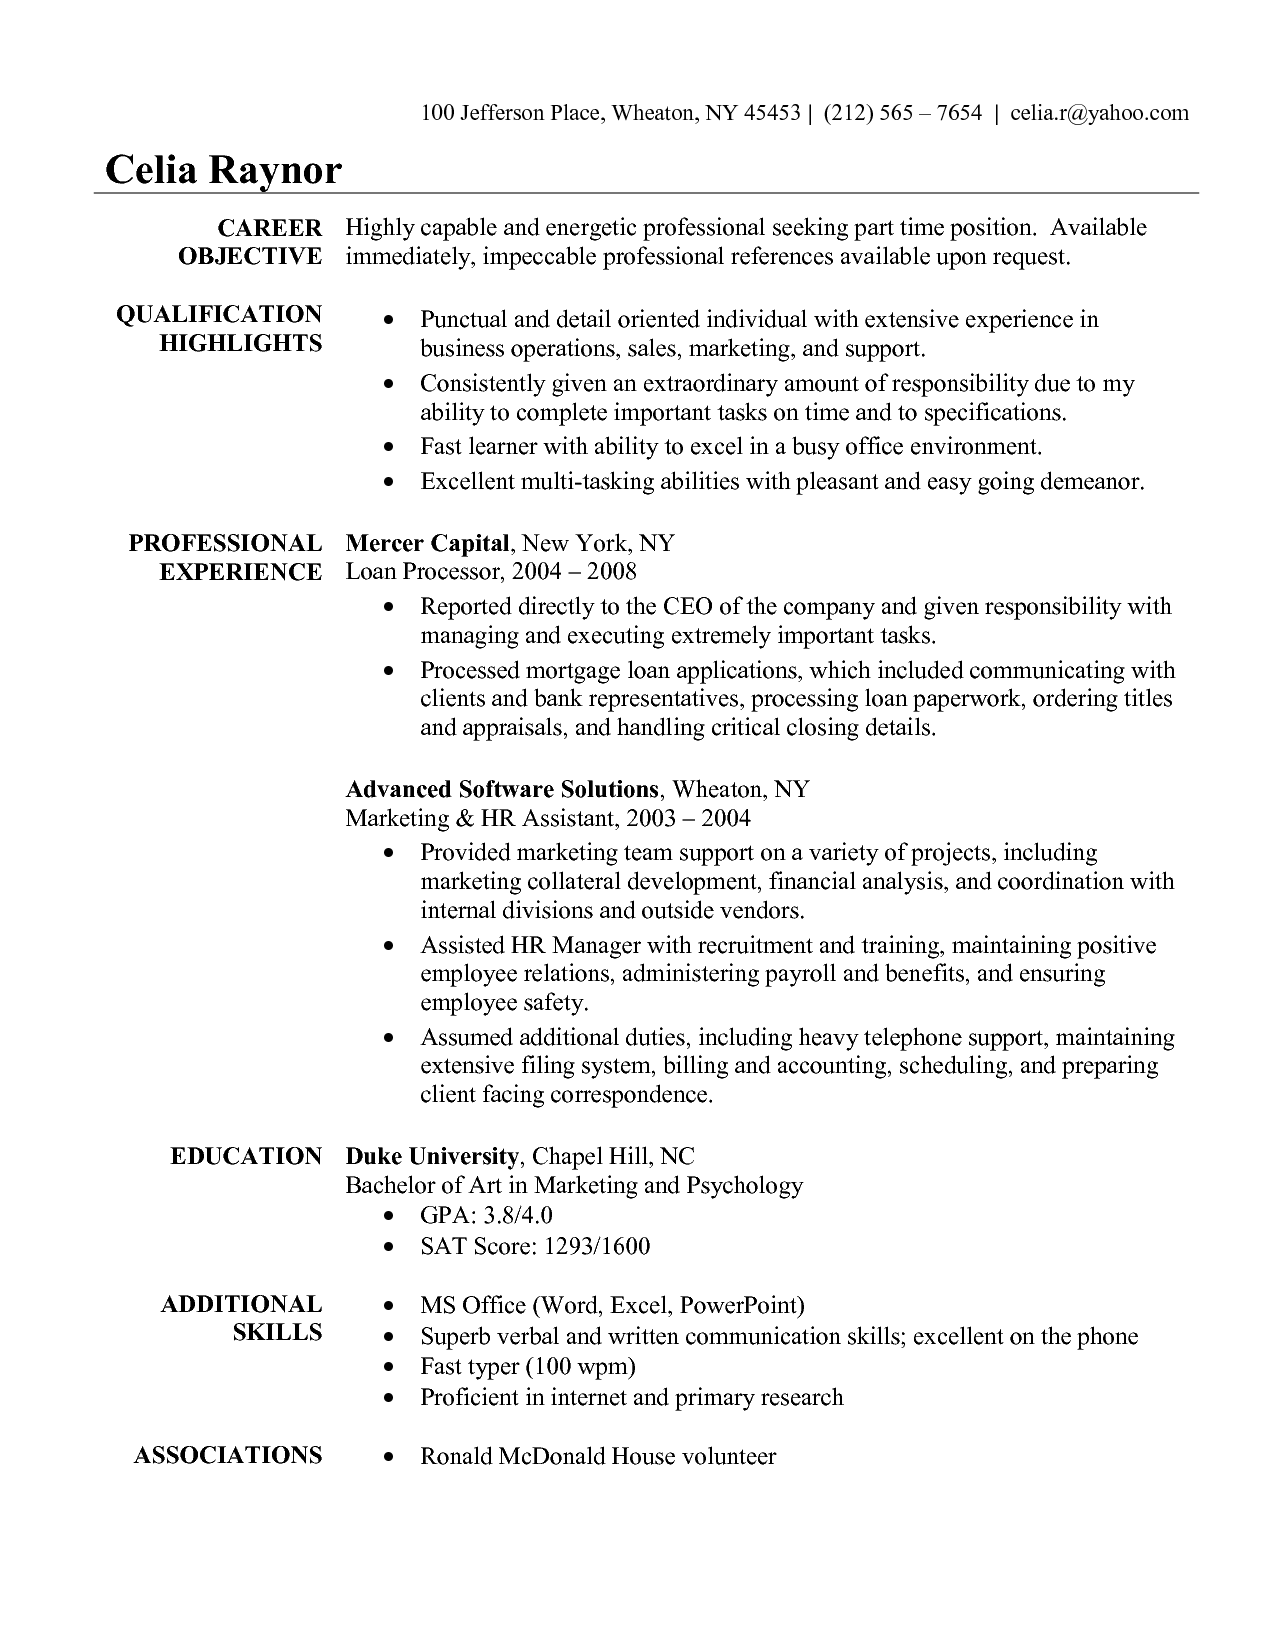 Administrative Secretary Resume Beauteous Resume Sample For Administrative Assistant Resume Samples For .